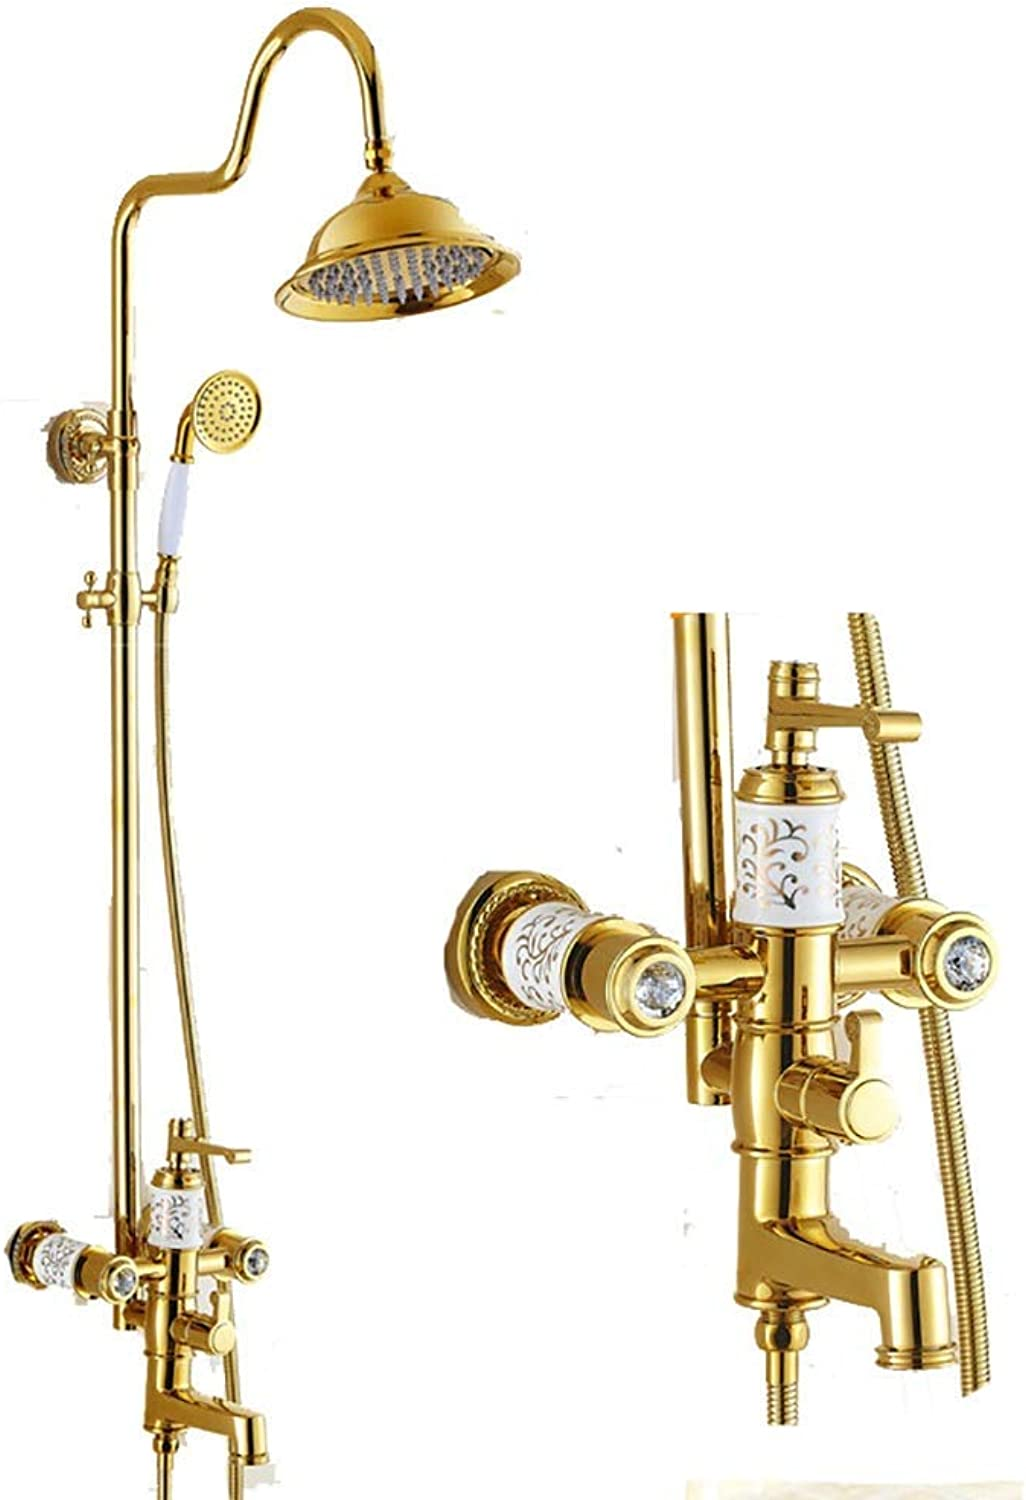 Cxmm Shower Shower Systems Europisches Duschset zur Wandmontage, Messing, drehbare Handbrause zum Heben, Kalt-   Warmwasserhahn für Badezimmer (Farbe  Gold)